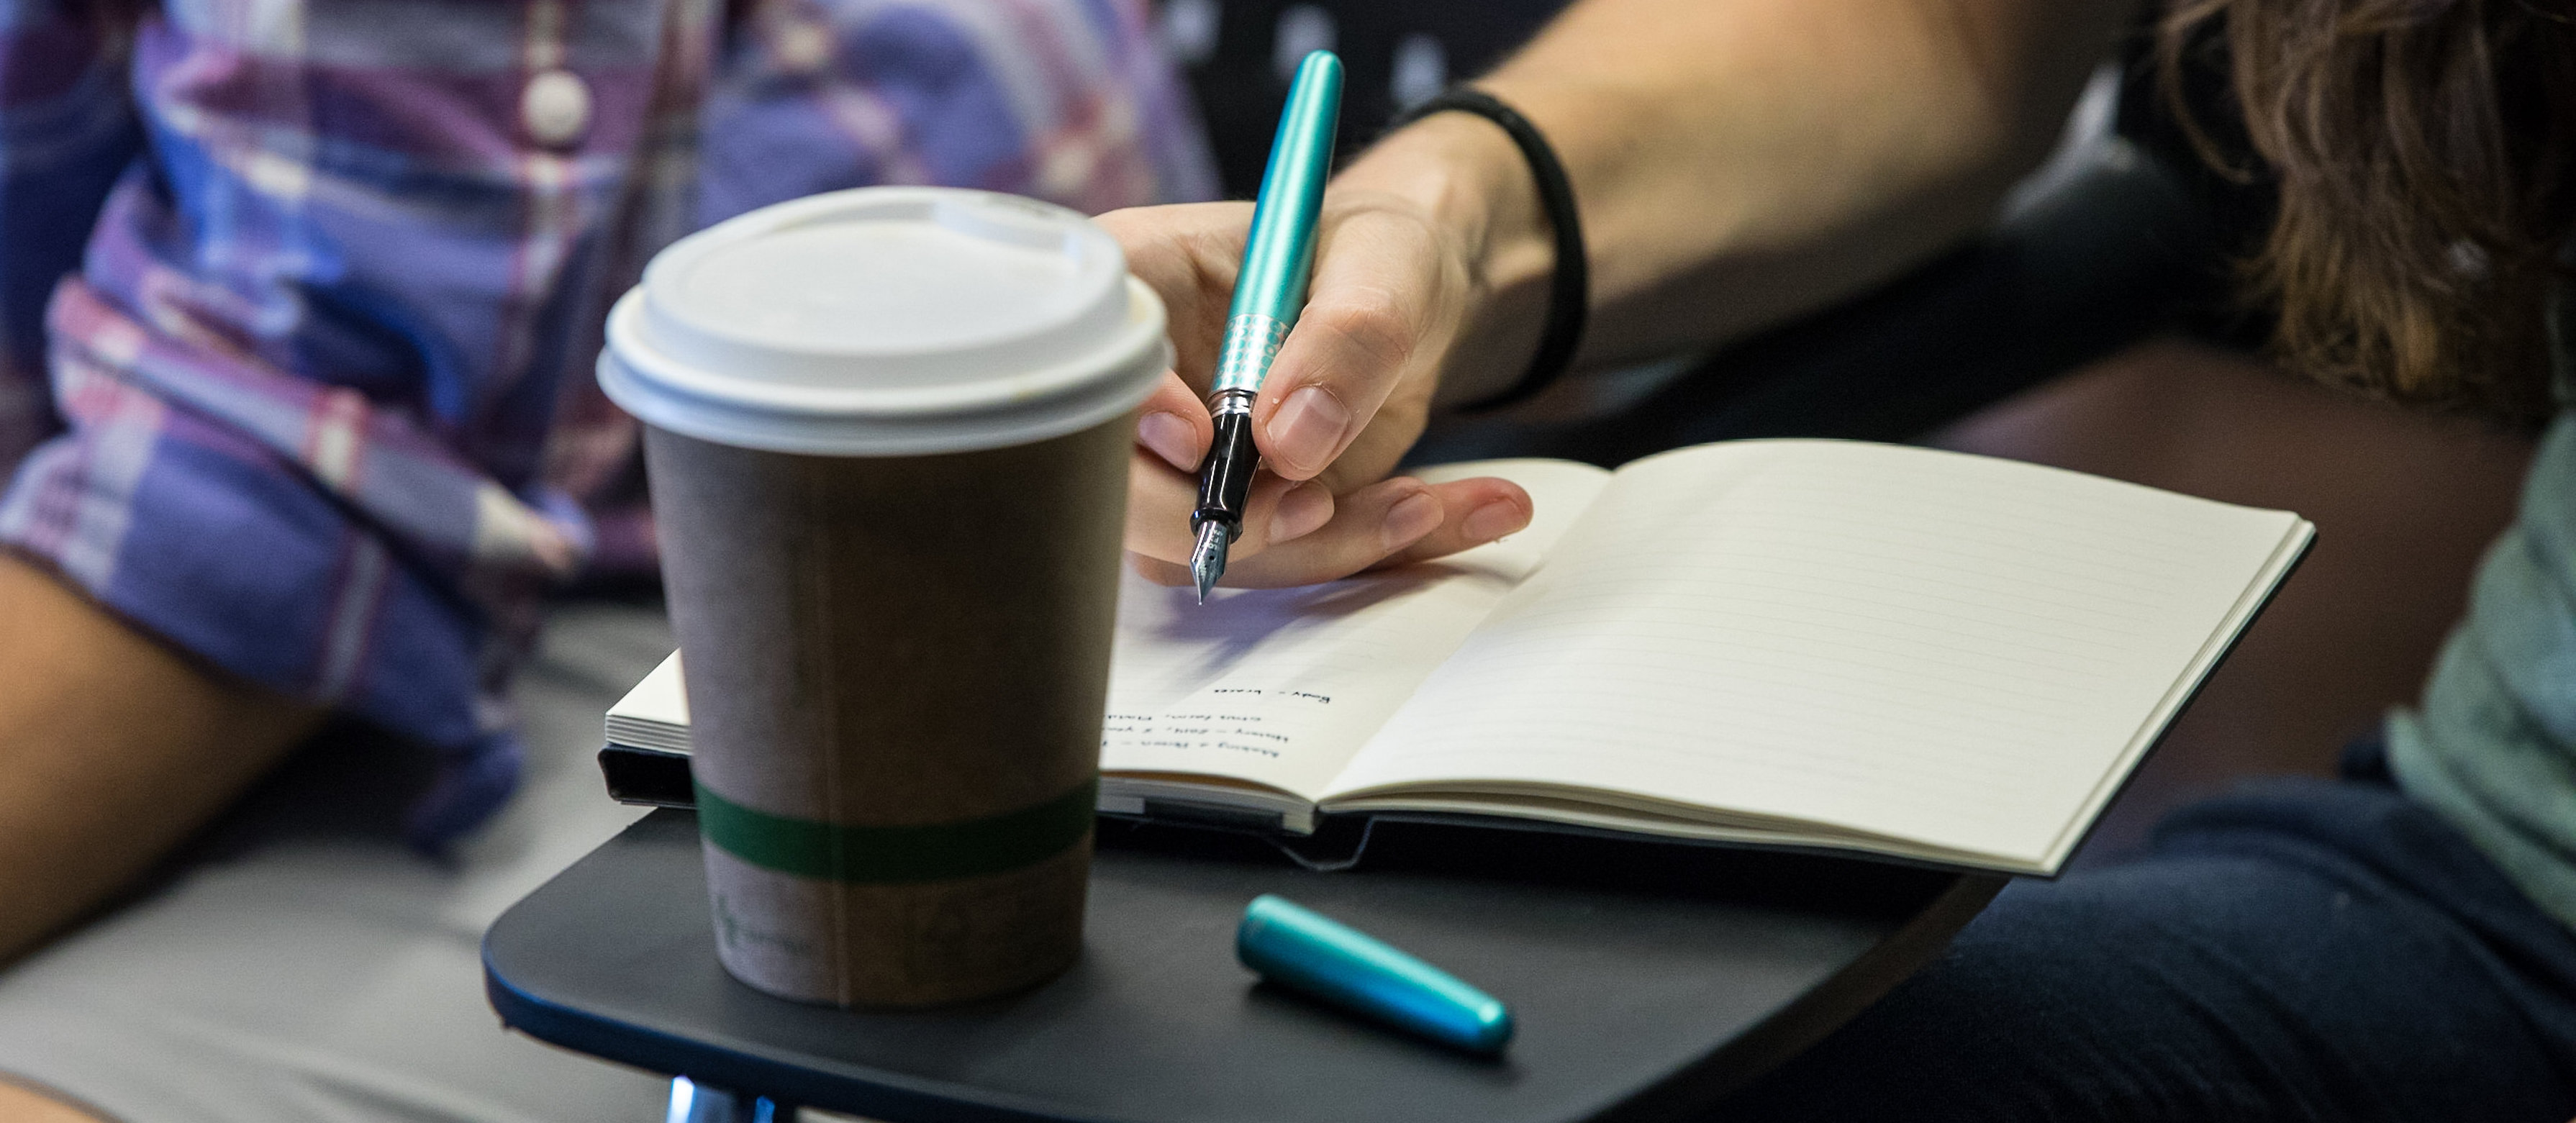 young writers writes at a desk with a coffee cup, pen and notebook